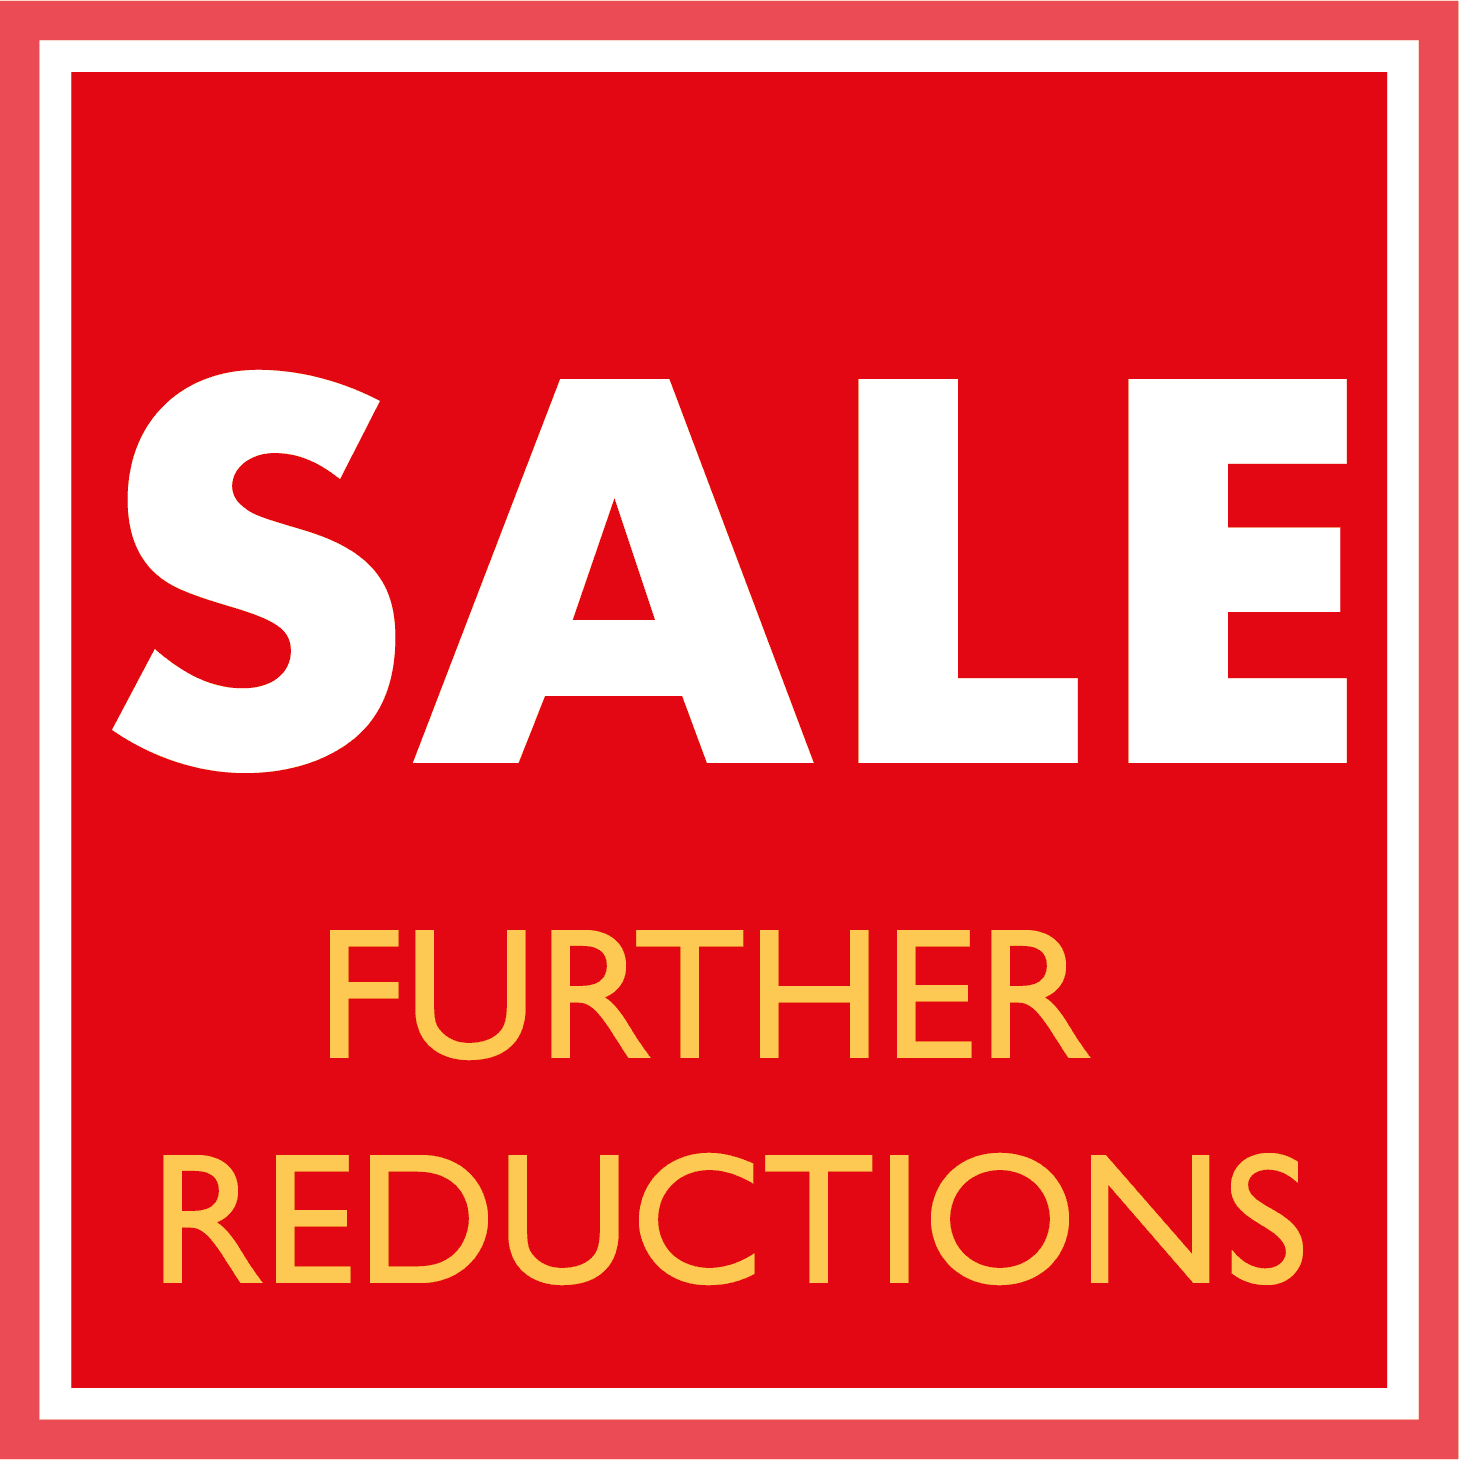 Sale Further reductions at Tynwald Mills